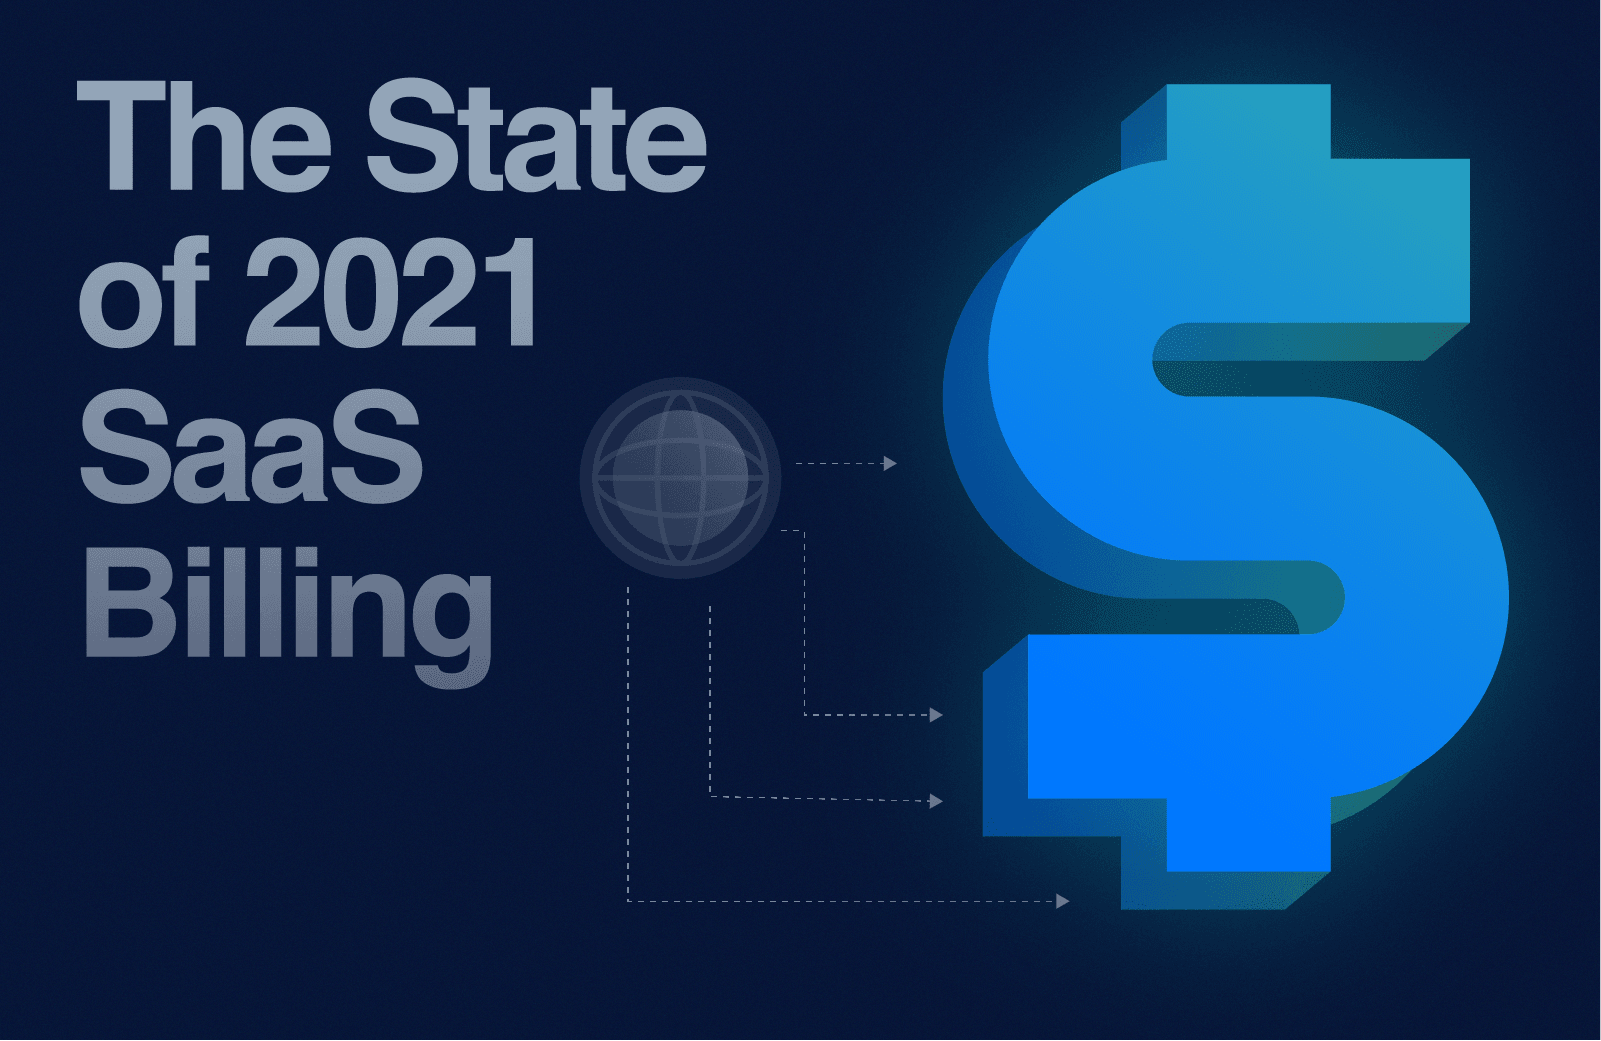 The State of 2021 SaaS Billing